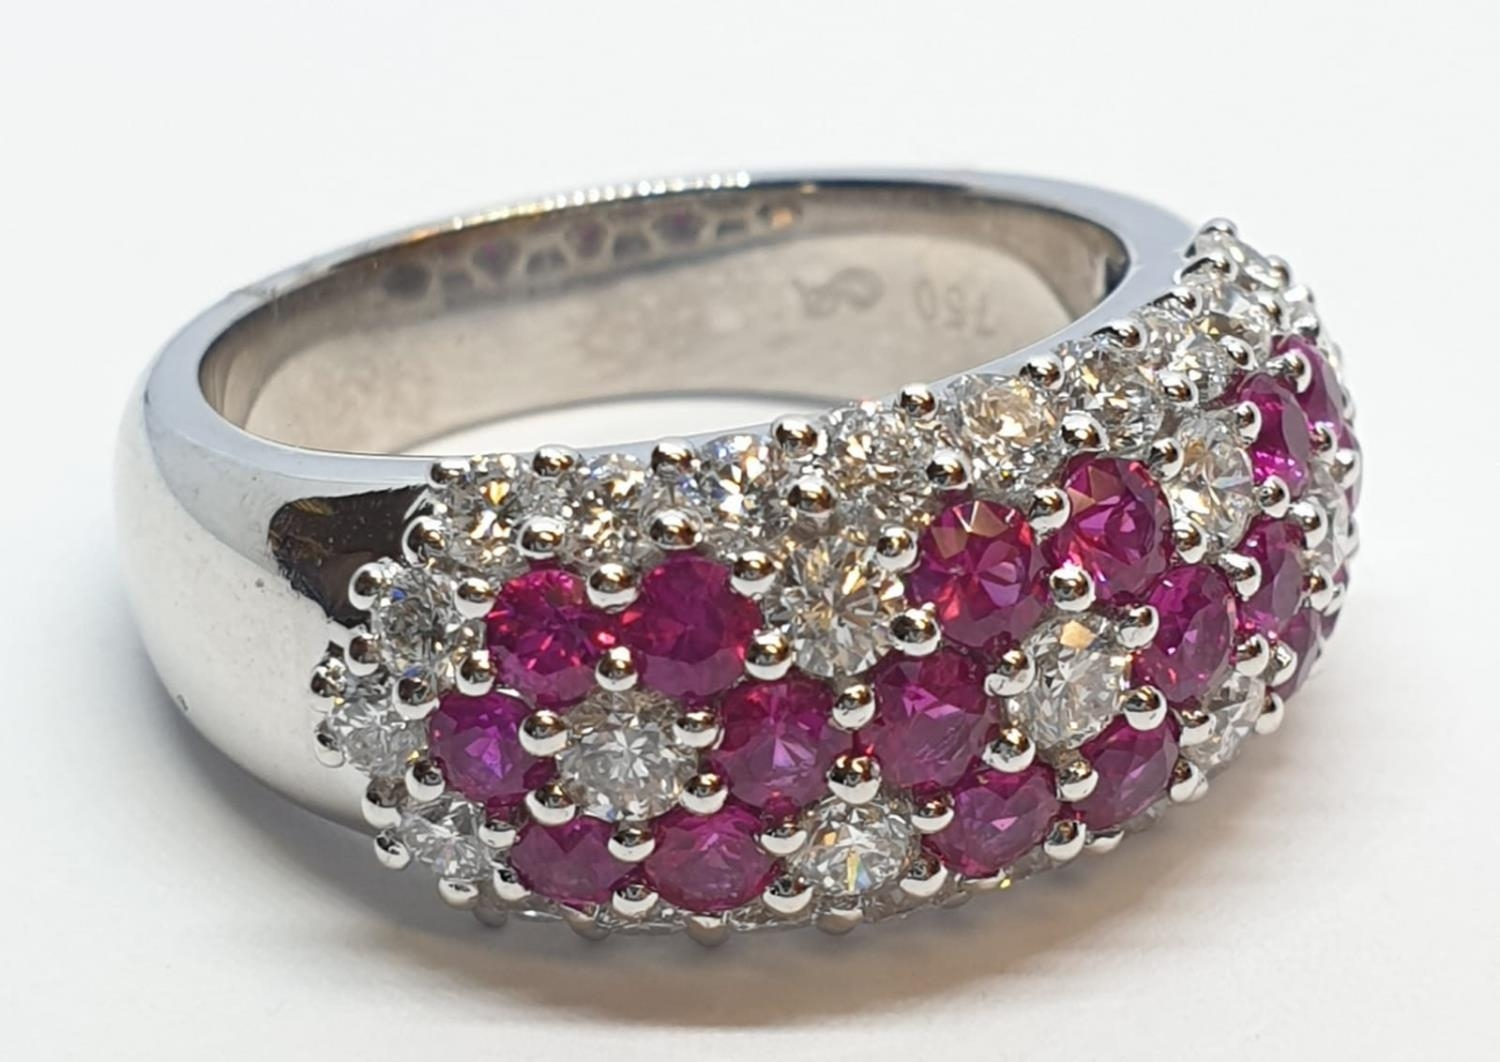 18ct white gold ring with over 1ct ruby and 1.8ct diamonds in flower design, weight 9.39g and size M